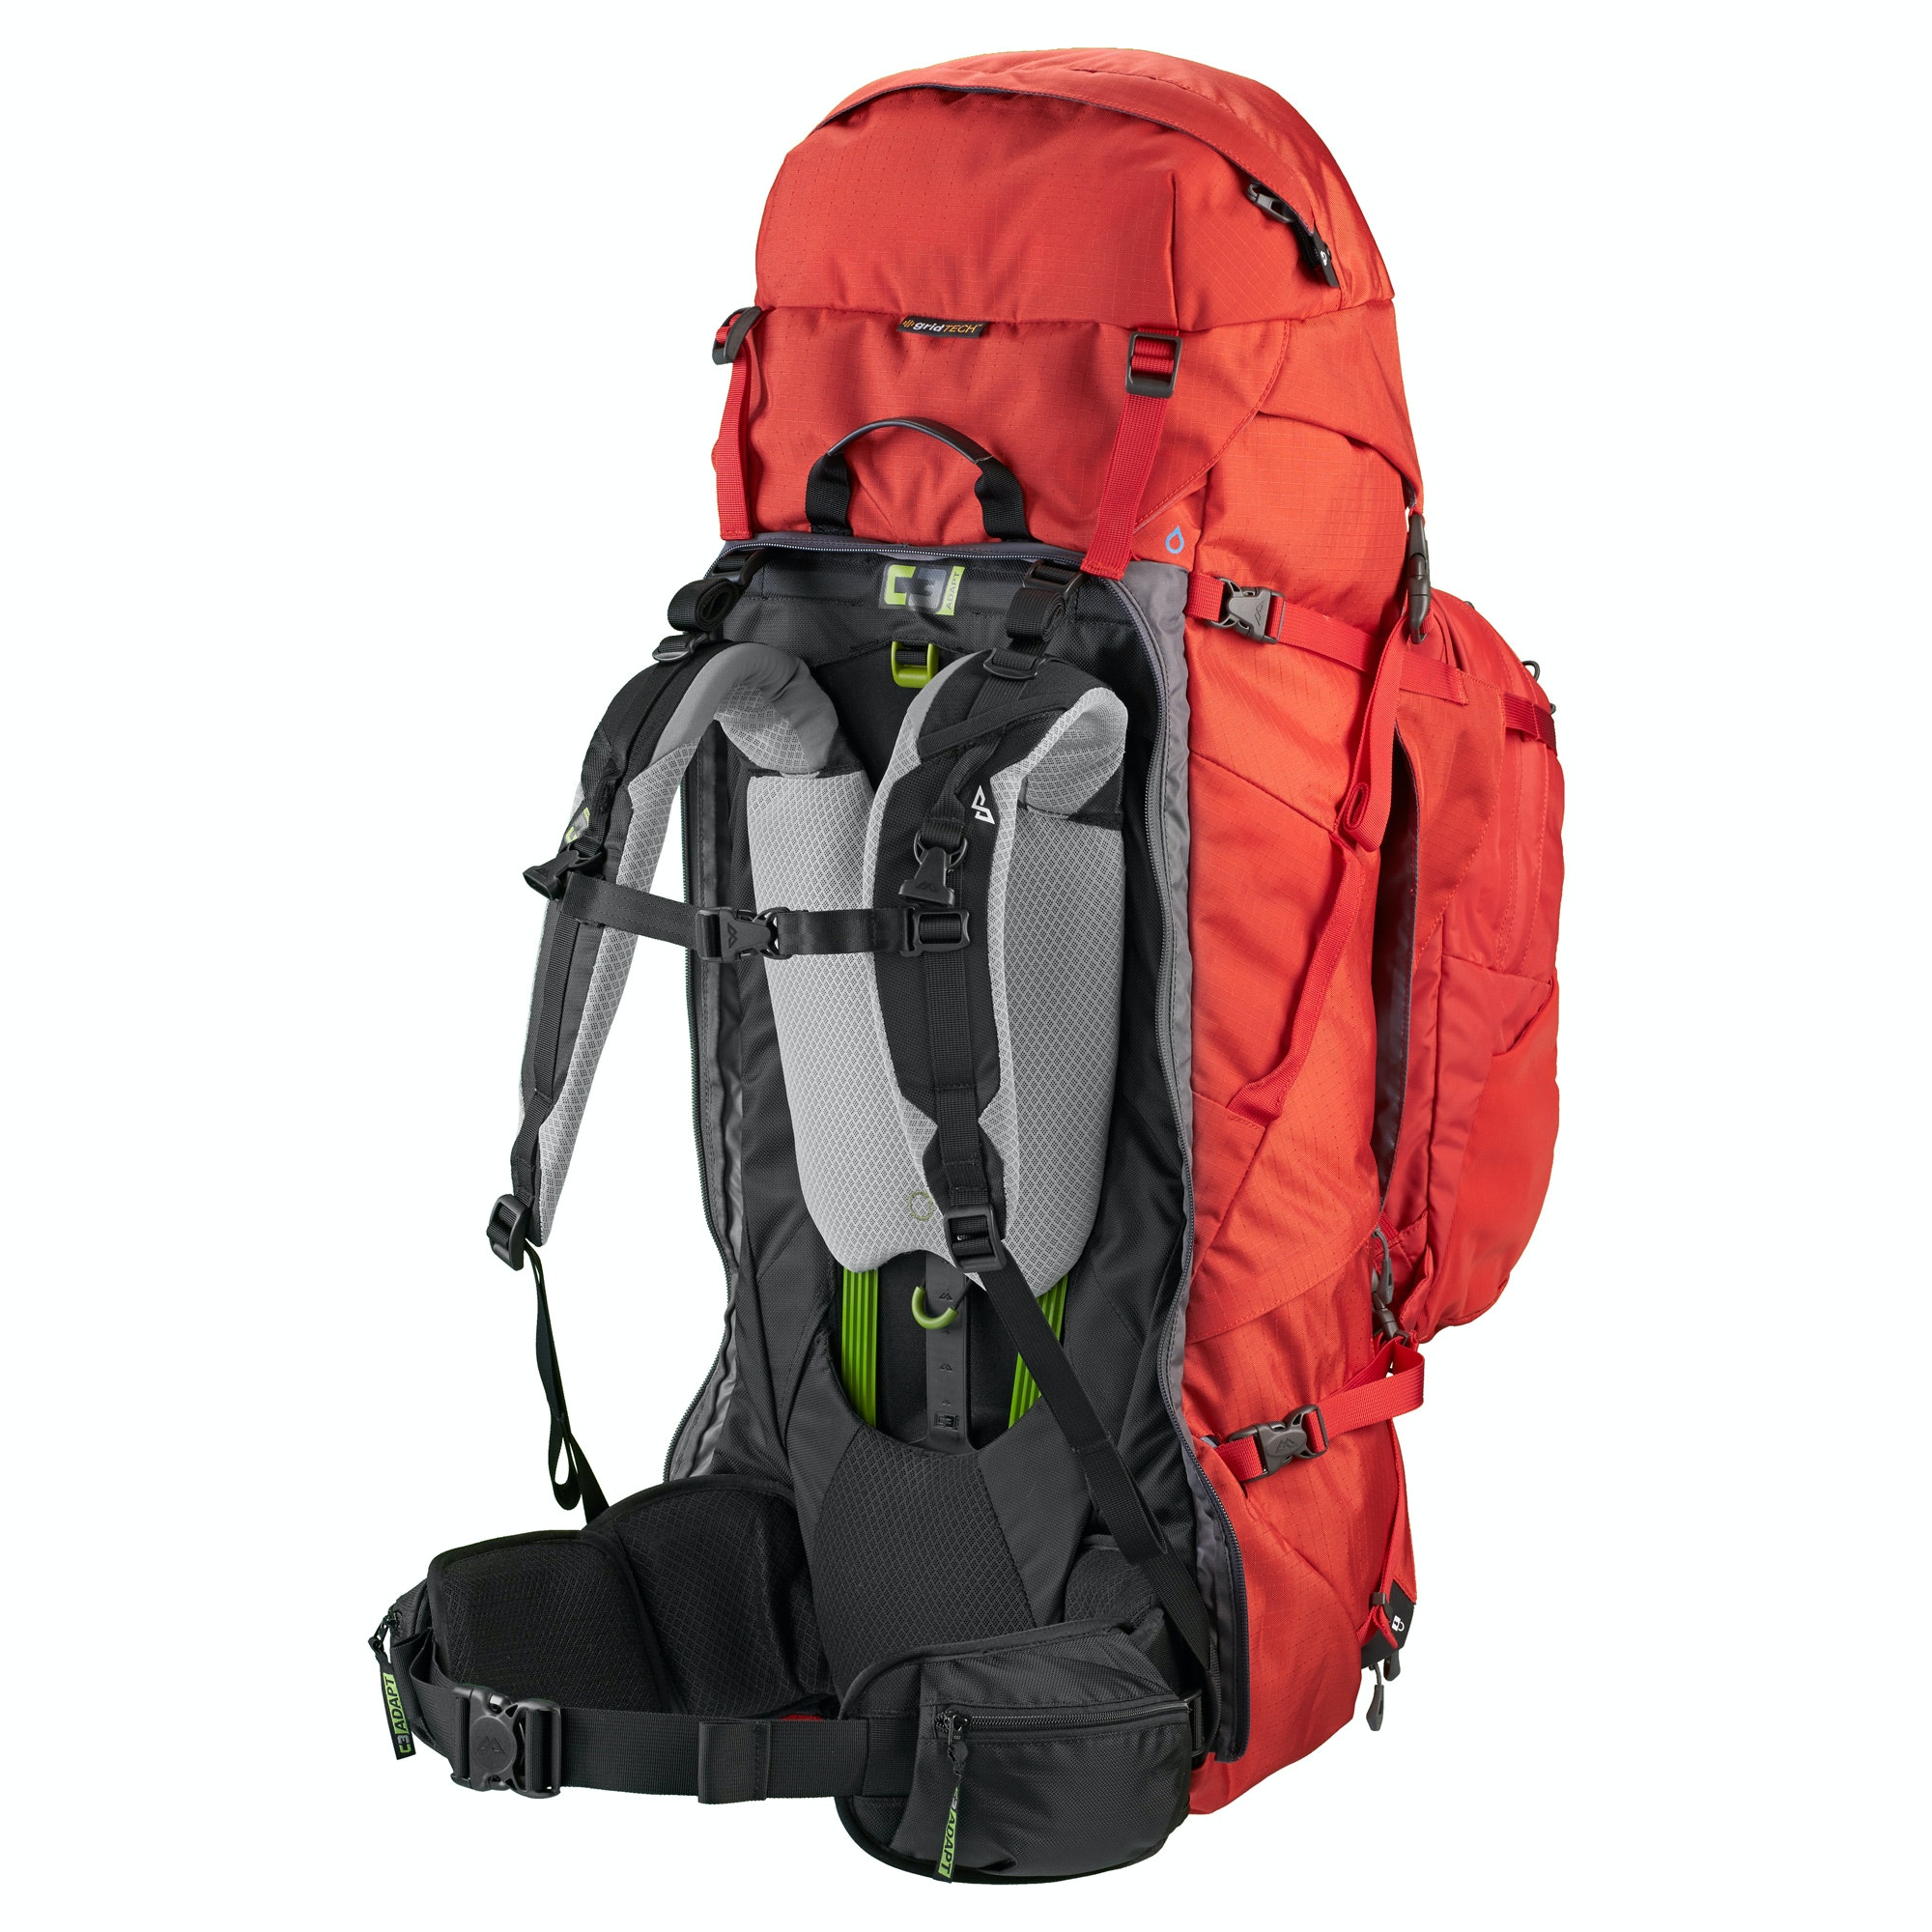 Interloper gridTECH 70L Backpack v2 - Sunset